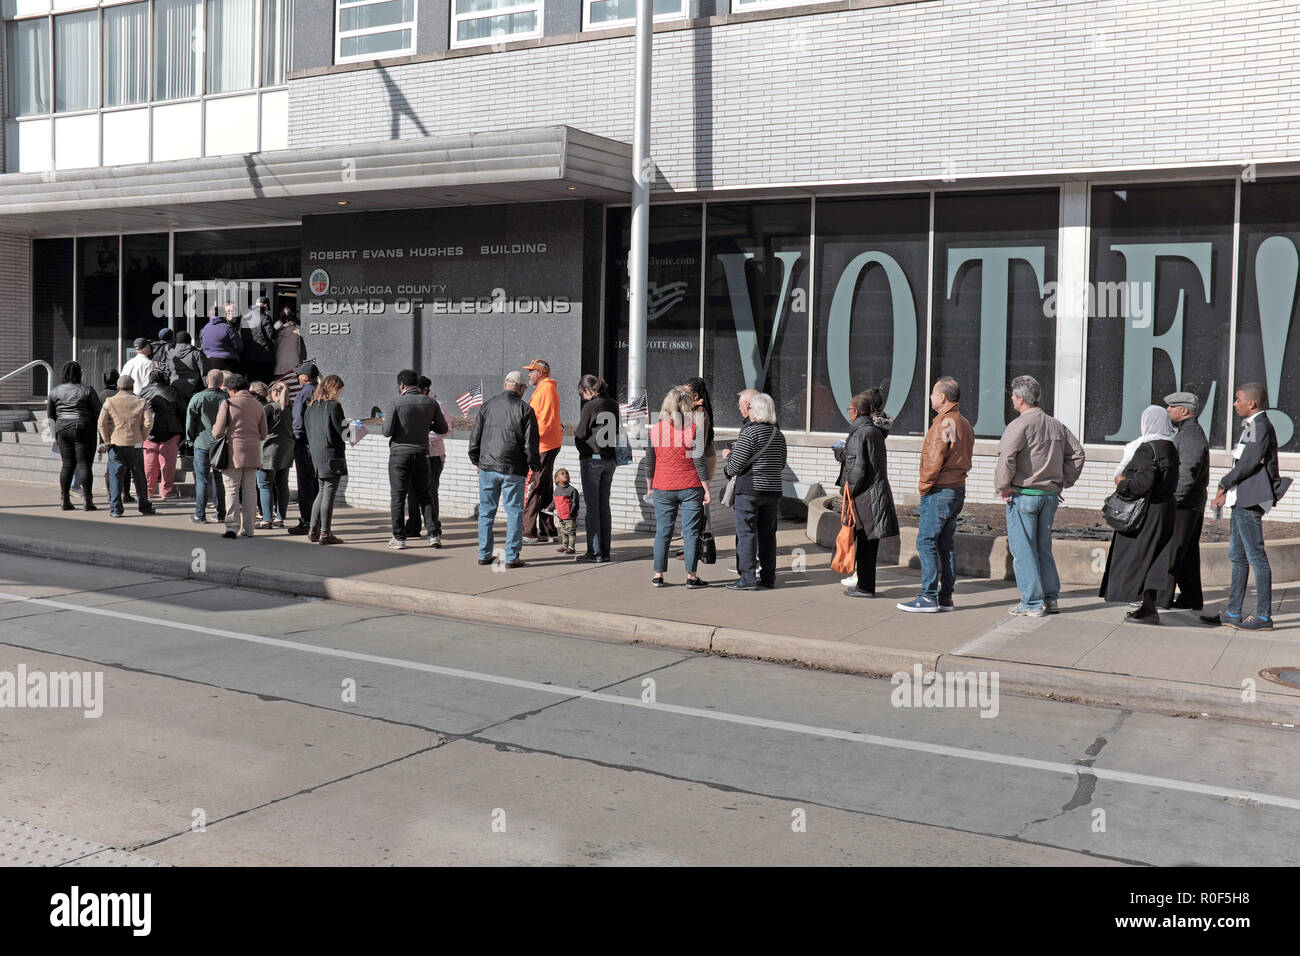 Cleveland, Ohio, USA.  4th Nov, 2018.  Voters wait in line at the Cuyahoga County Board of Elections in downtown Cleveland, Ohio, USA.  They are part of the unprecedented number of early voters who across the US are voting prior to the November 6, 2018 Election Day.  Credit: Mark Kanning/Alamy Live News - Stock Image